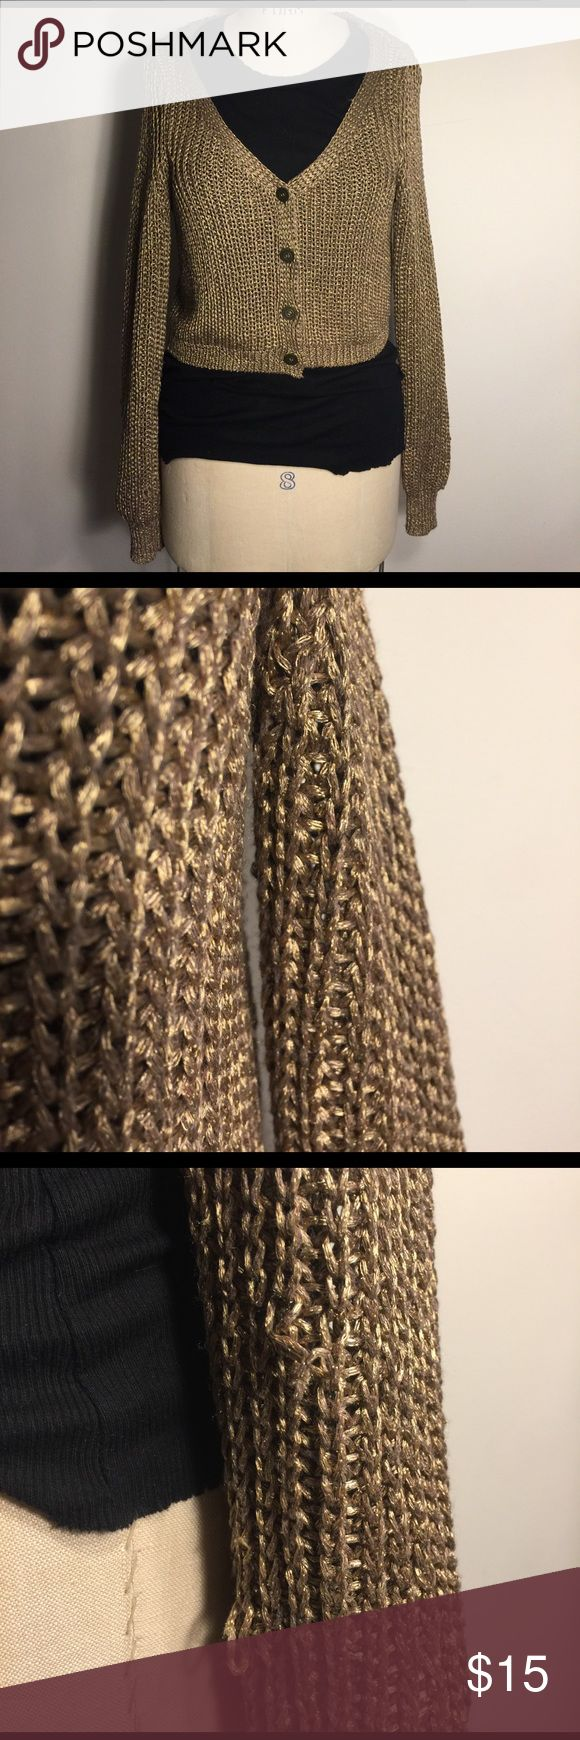 Free People shimmer gold cardigan Rarely worn, but a few yarns are pulled as shown in photo. Pretty good shimmer yarn. Free People Sweaters Cardigans